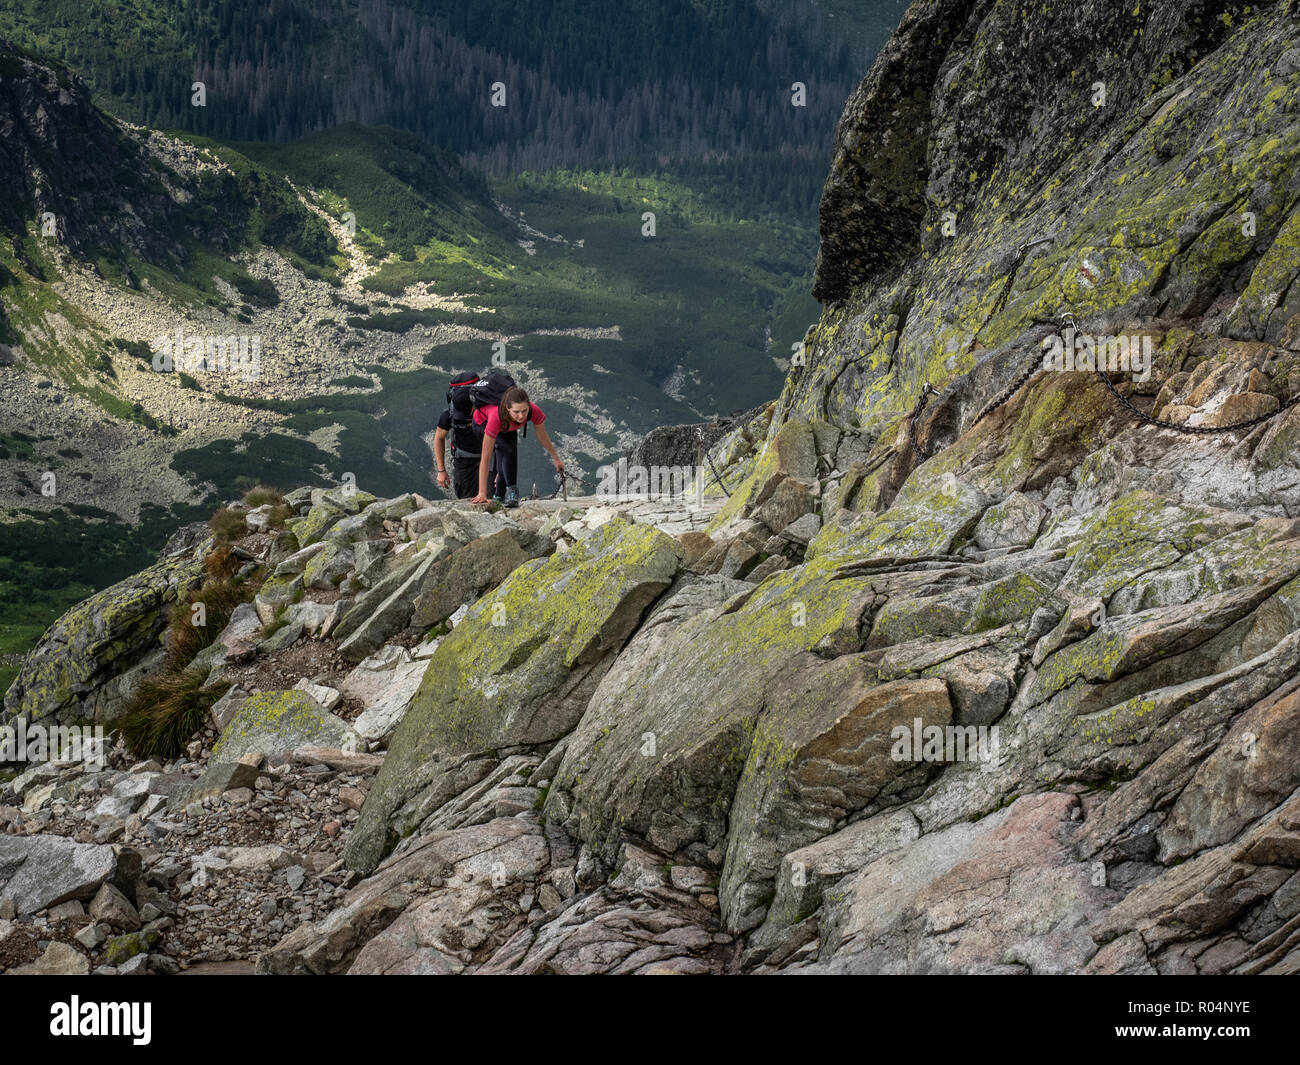 Lady scrambling on Swinica, 2301m, using metal chains, on the Polish and Slovak border in the Tatra Mountains, Poland, Europe - Stock Image